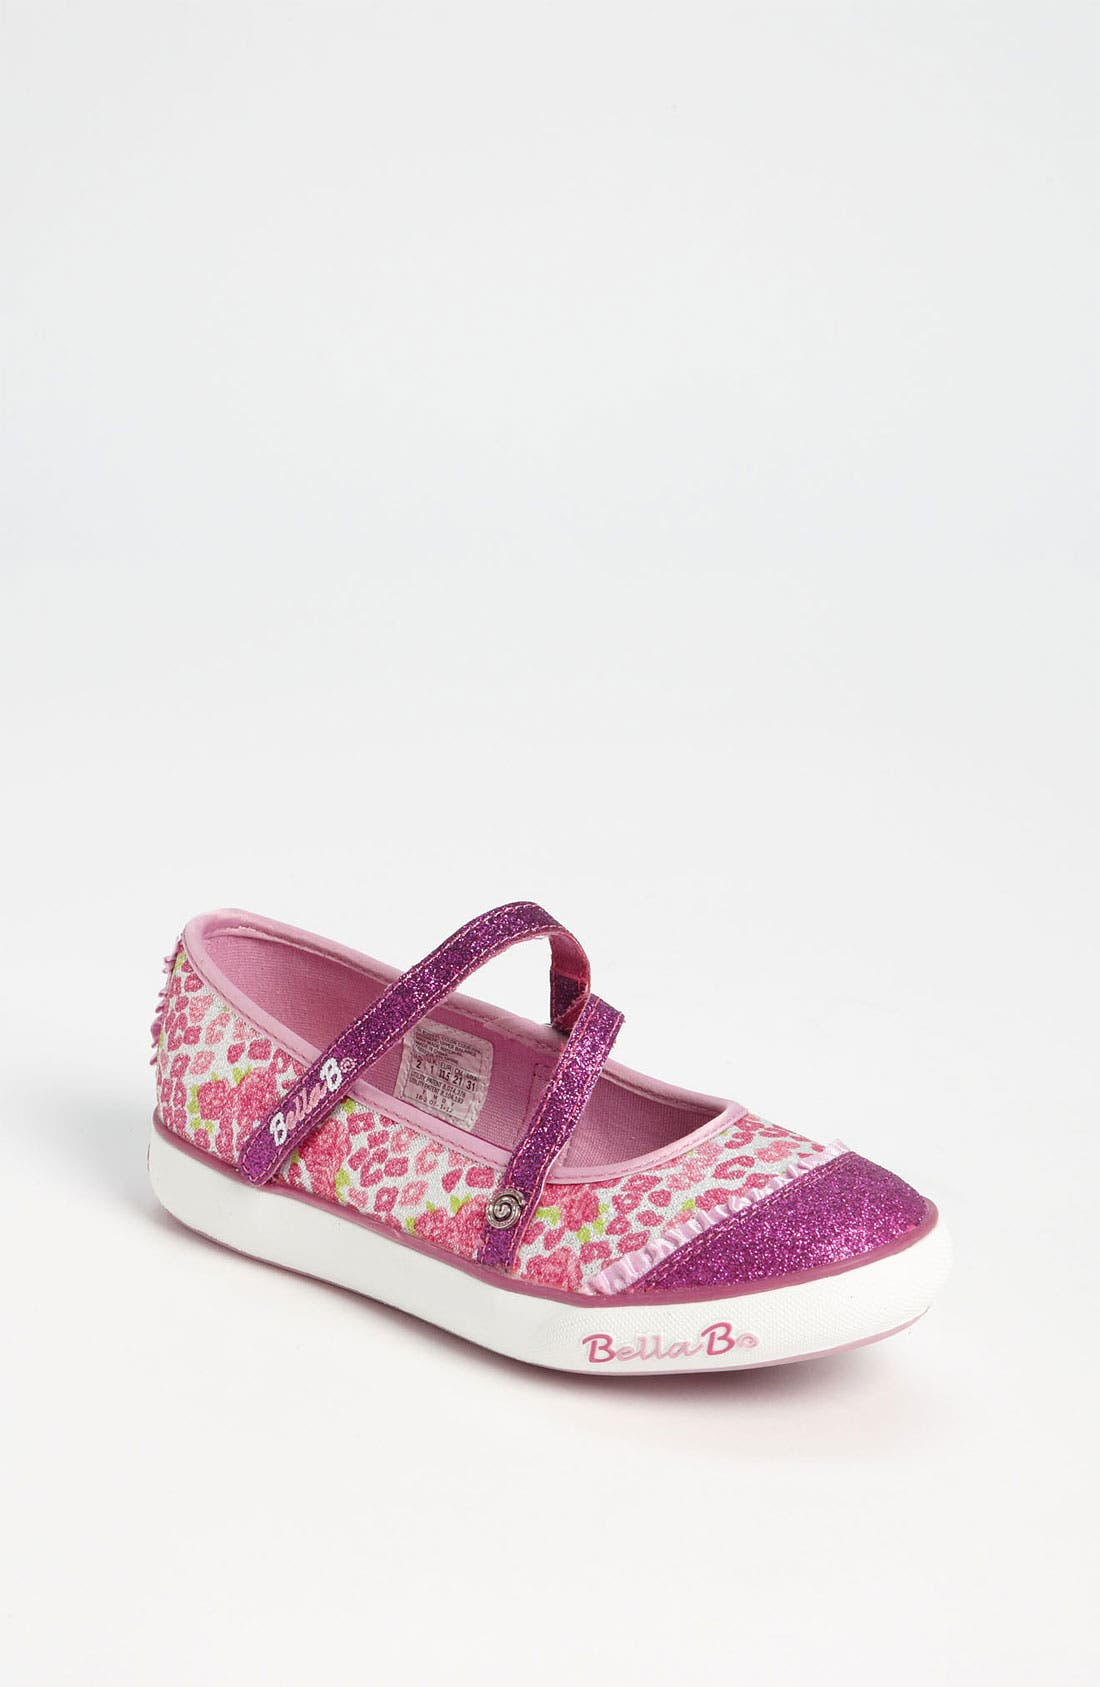 Main Image - SKECHERS 'Bella Ballerina' Mary Jane (Toddler & Little Kid)